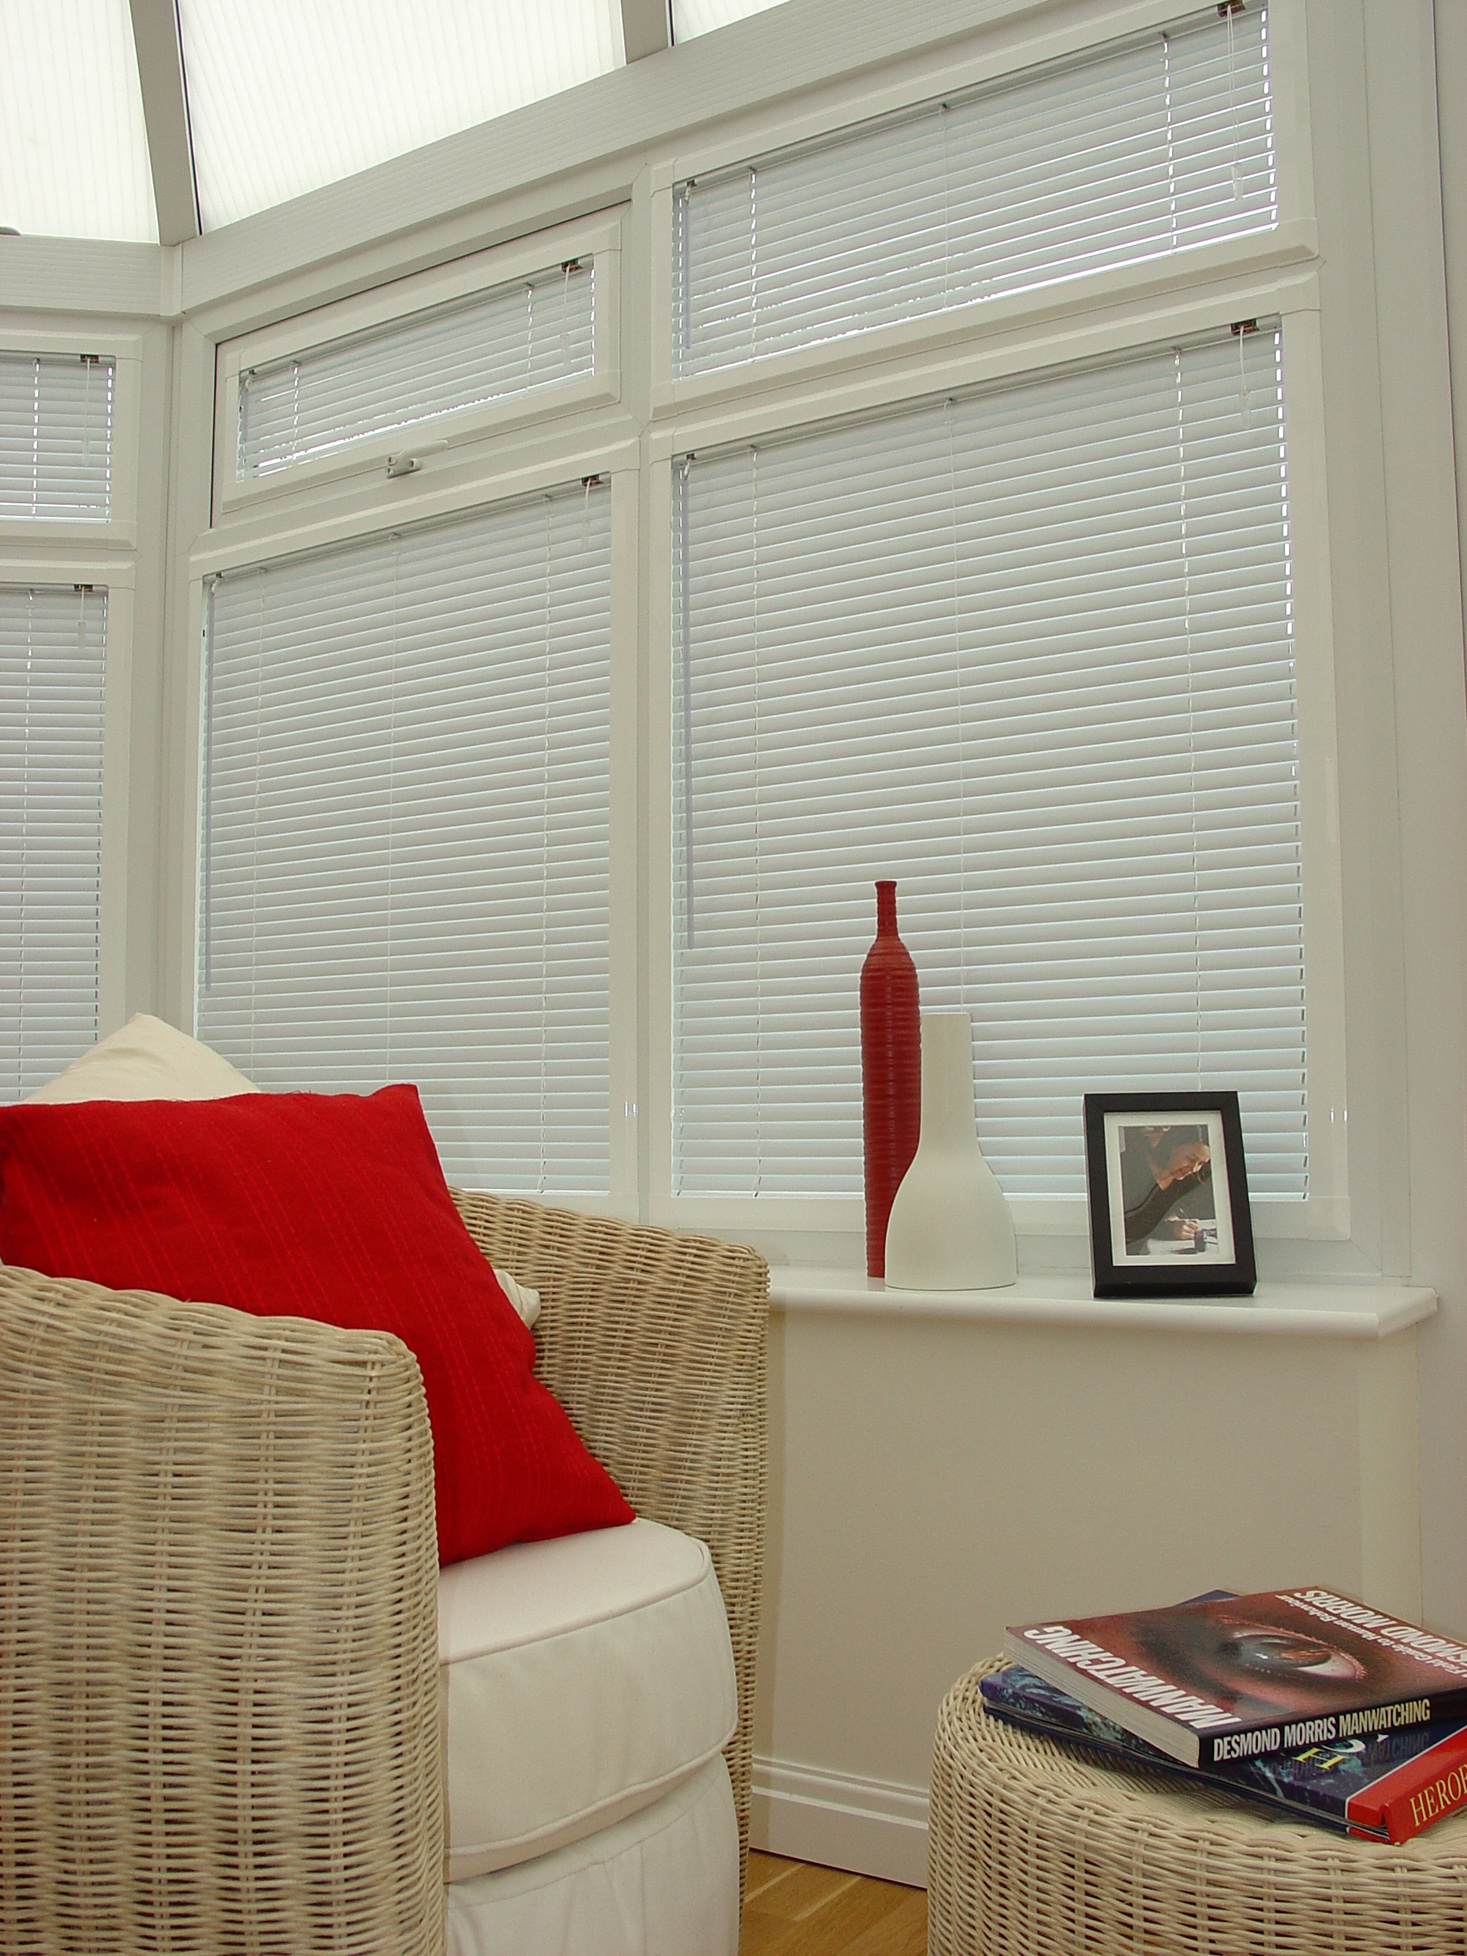 decor window the or classic streamlined should find drapery pin home use curtains treatment design s loom louver guide drapes whether style enhance glam modern your to drape